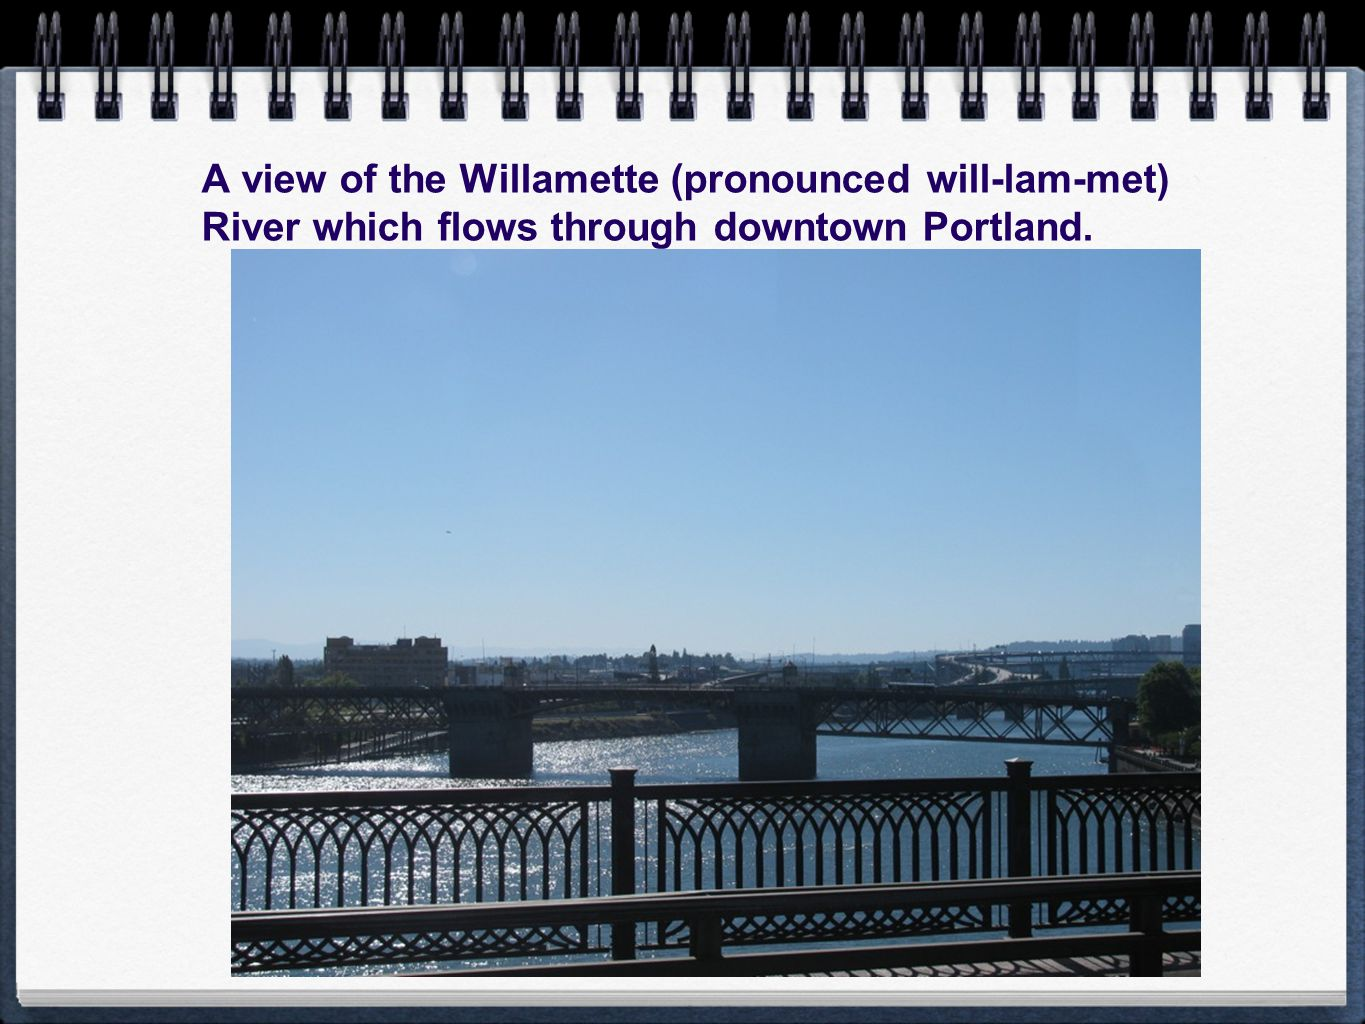 A view of the Willamette (pronounced will-lam-met) River which flows through downtown Portland.